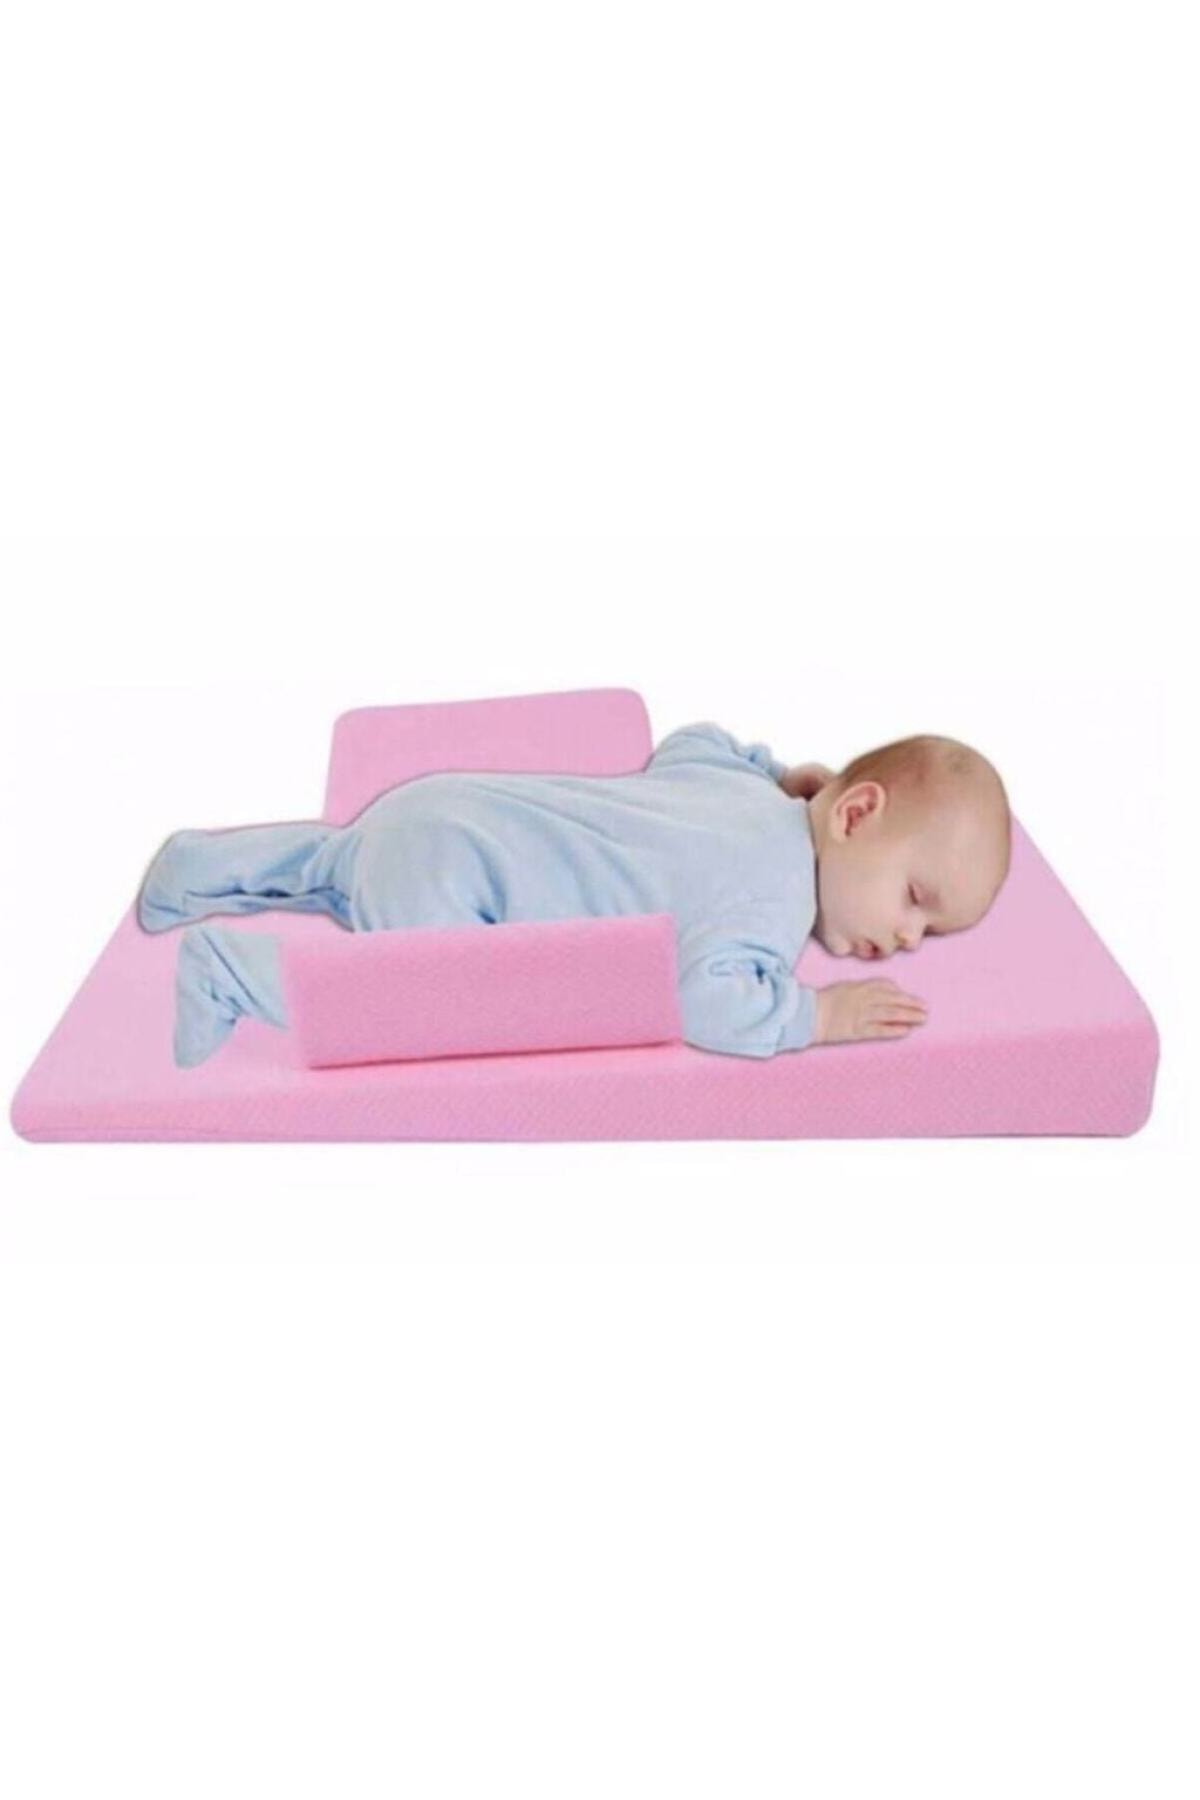 Viscoleff Baby Reflux Pillow - Baby Reflux Bed MOTHER BABY PRODUCT SLEEP TURKISH BED